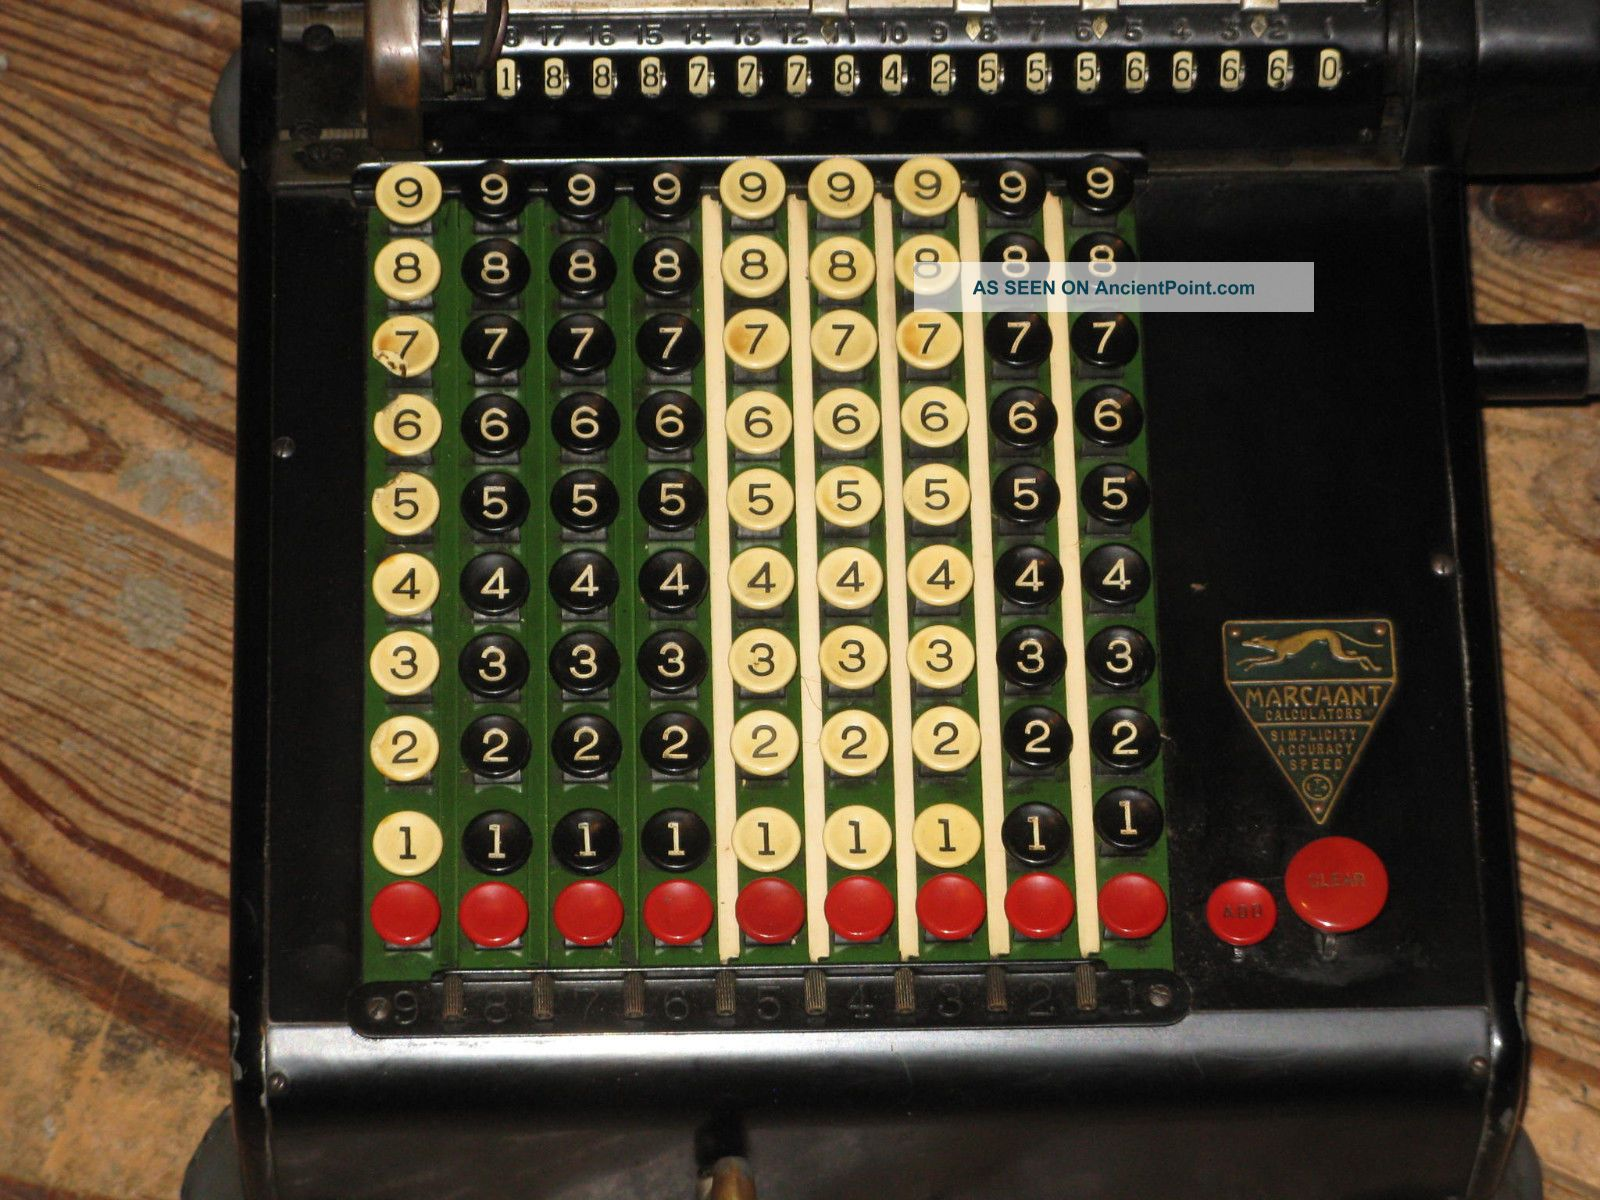 Antique Marchant Model Kc? Mechanical Calculating Machine Calculator Cash Register, Adding Machines photo